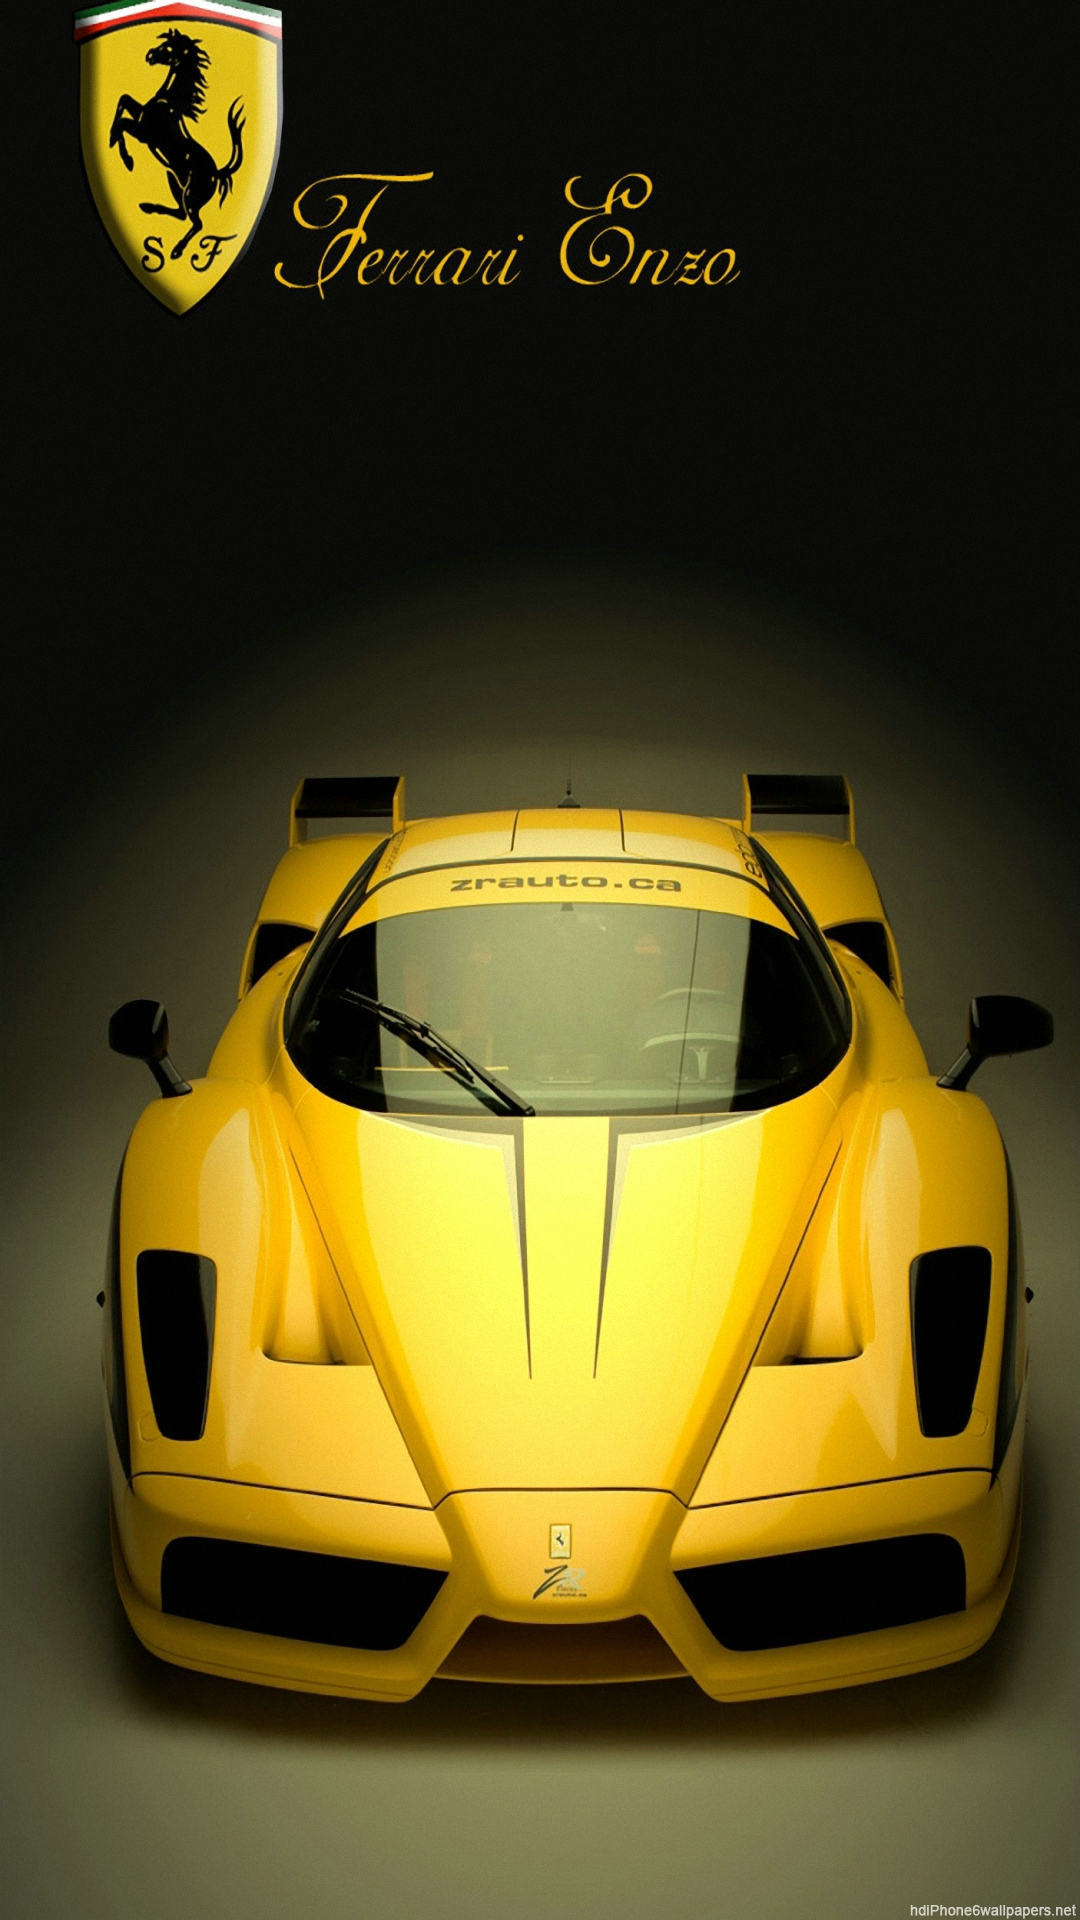 But setting any old live photo isn't going to give you great results: Ultra Hd 4k Car Wallpaper For Mobile 1080x1920 Download Hd Wallpaper Wallpapertip